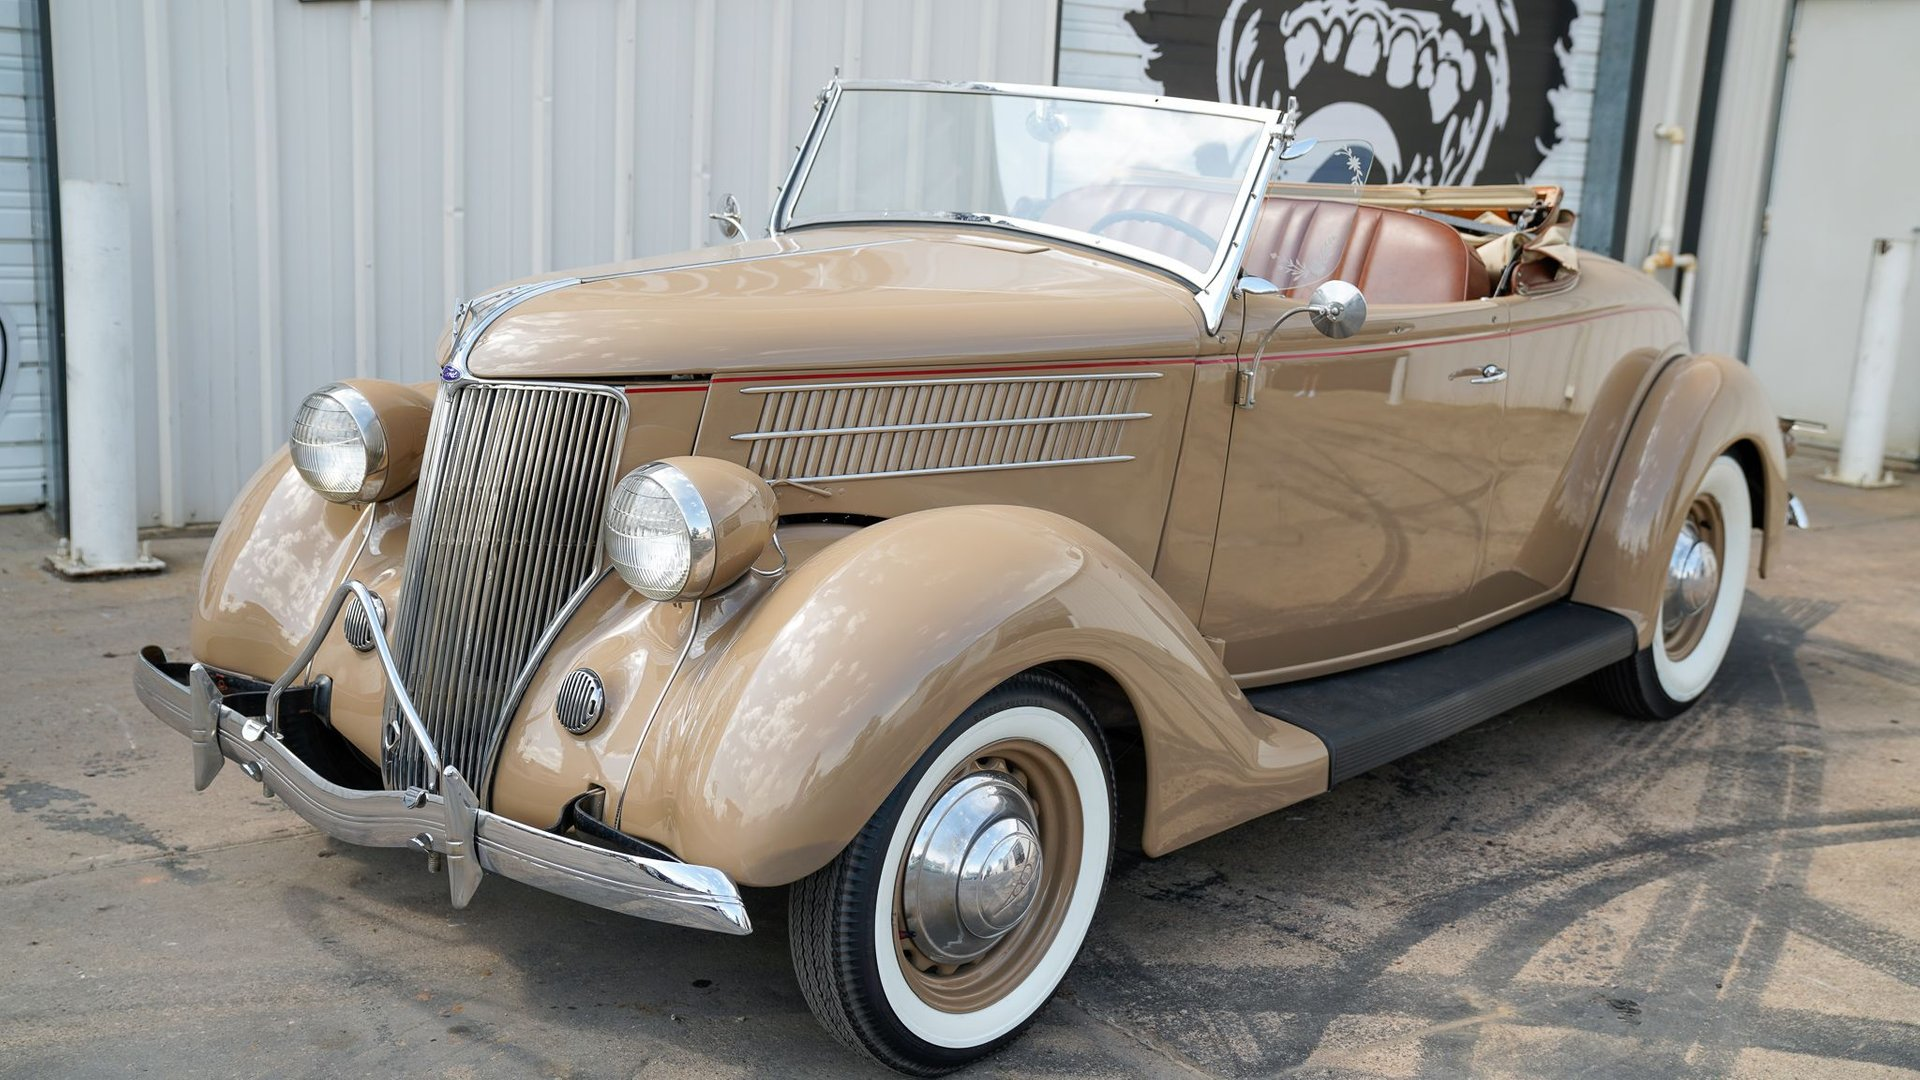 1936 Ford Convertible Rumble Seat Roadster For Sale 175461 Motorious